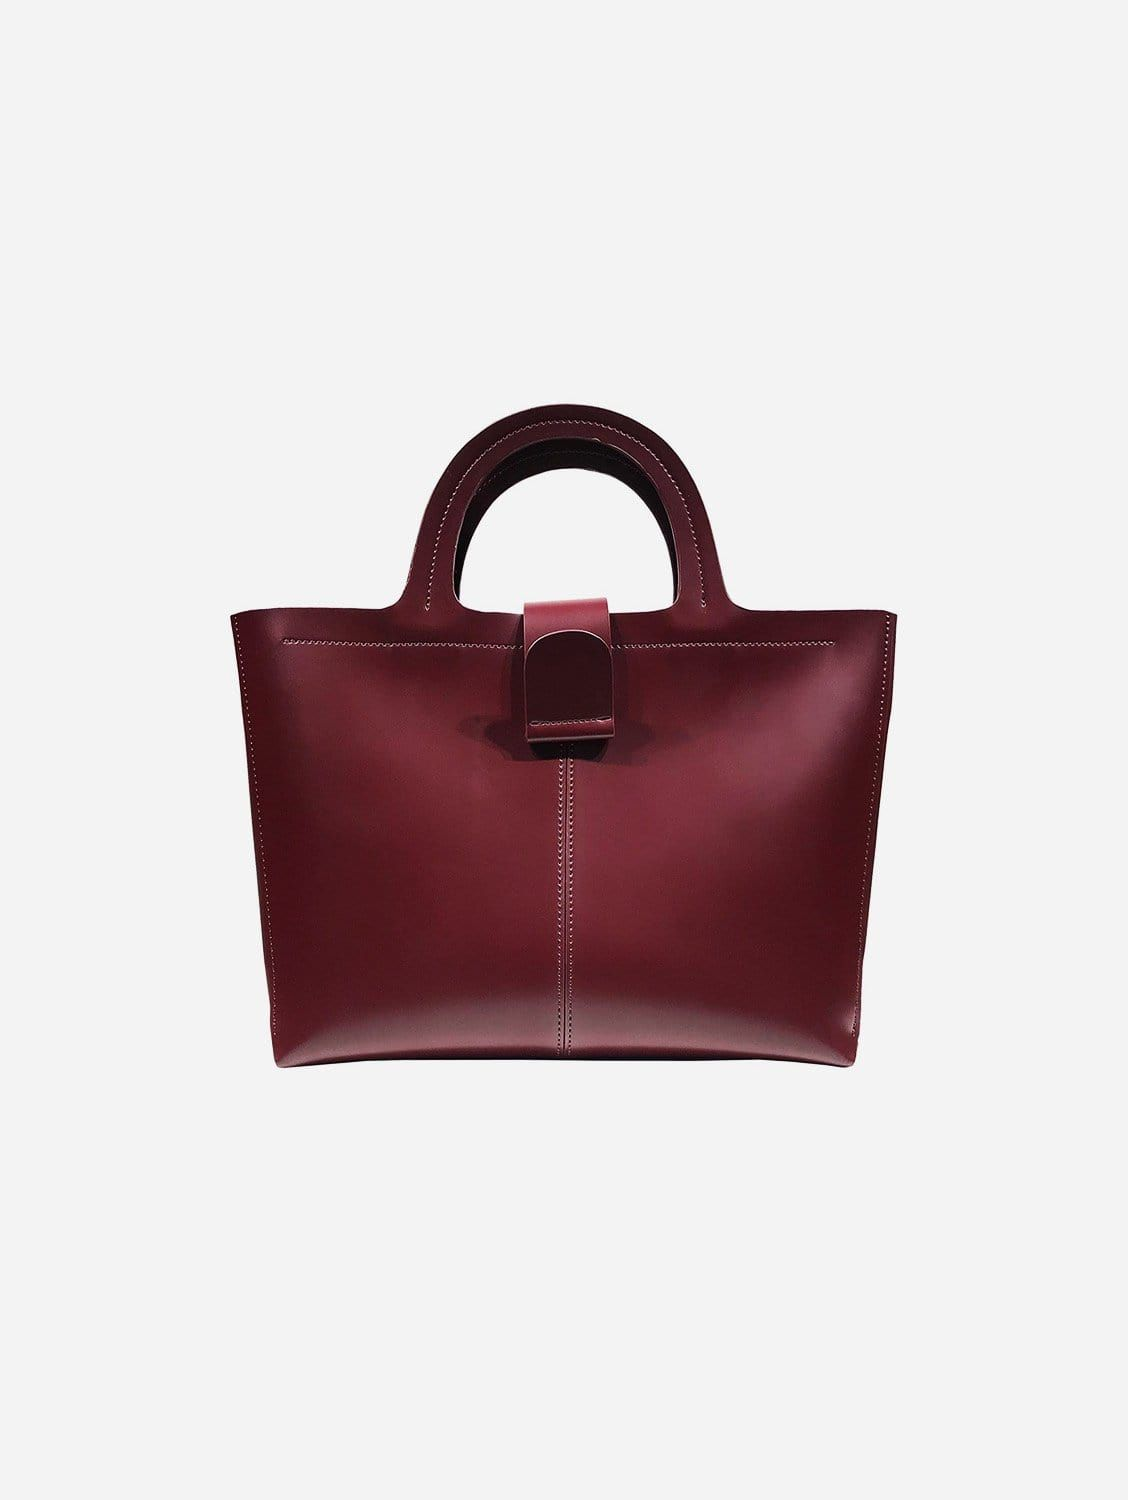 Expressions Nyc Sustainable Vegan Leather Bags On Renoon In 2020 Vegan Leather Bag Sustainable Accessories Vegan Leather